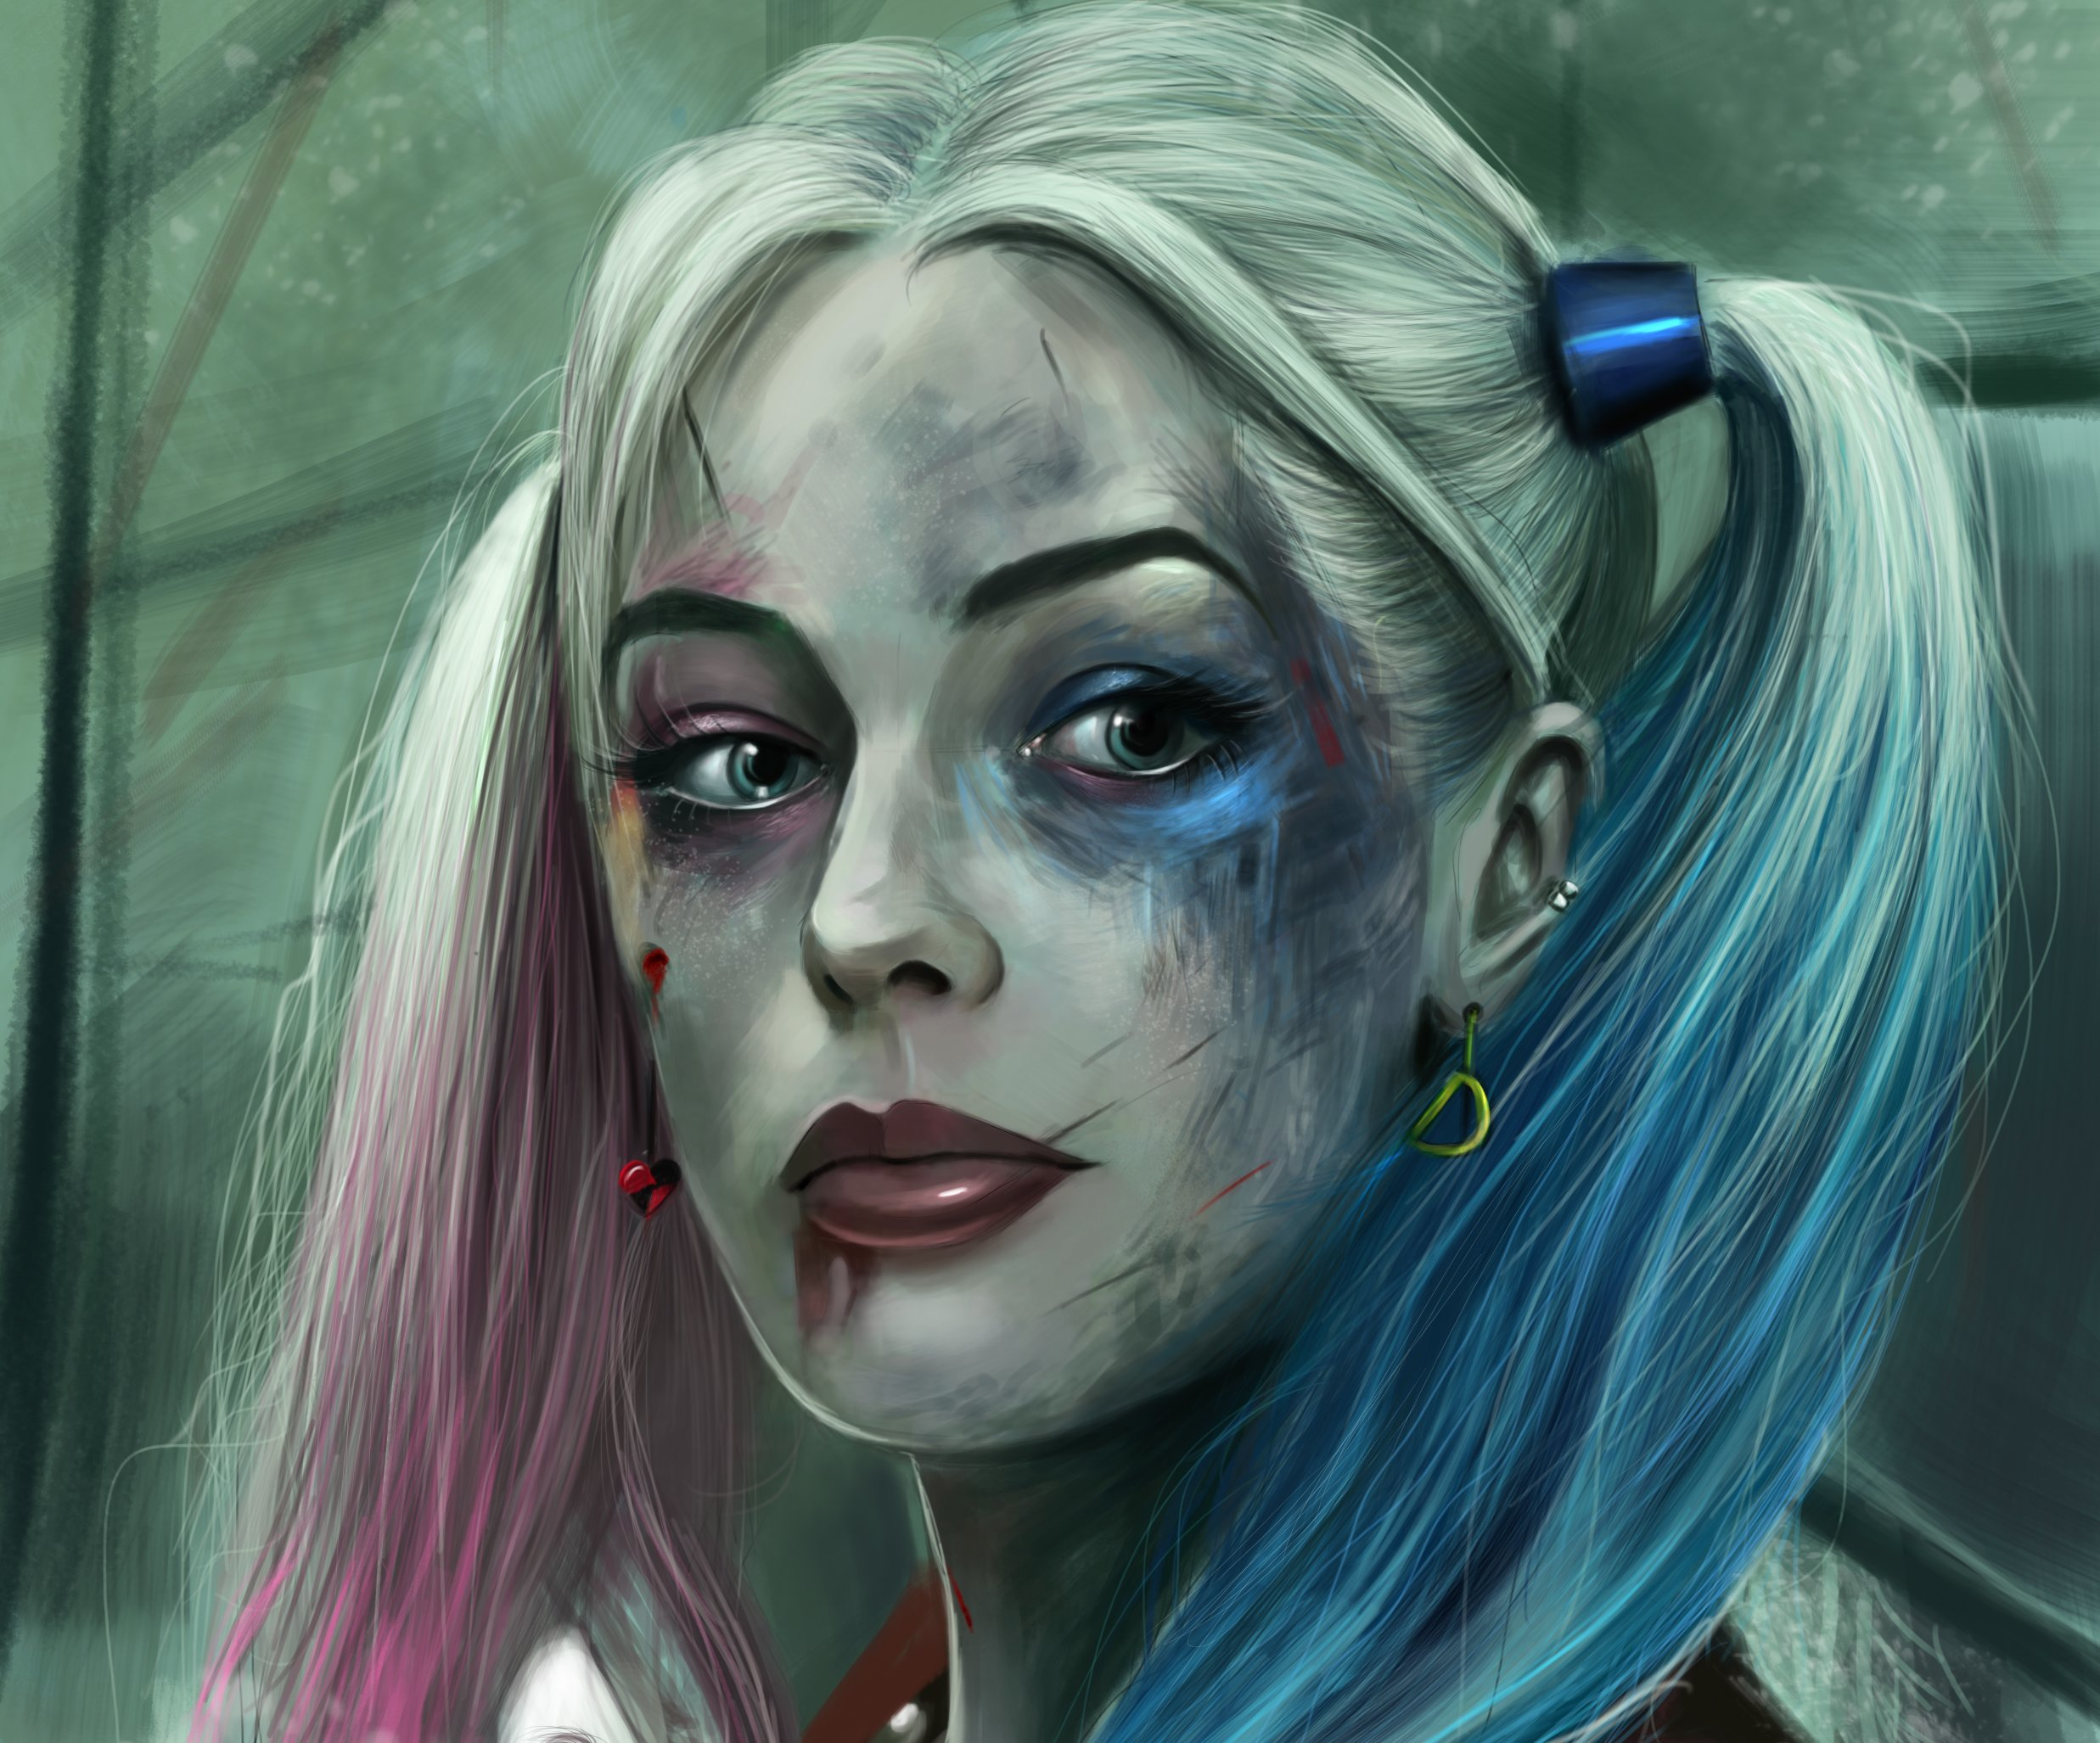 Suicide Squad Harley Quinn Wallpapers Images Is Cool Wallpapers